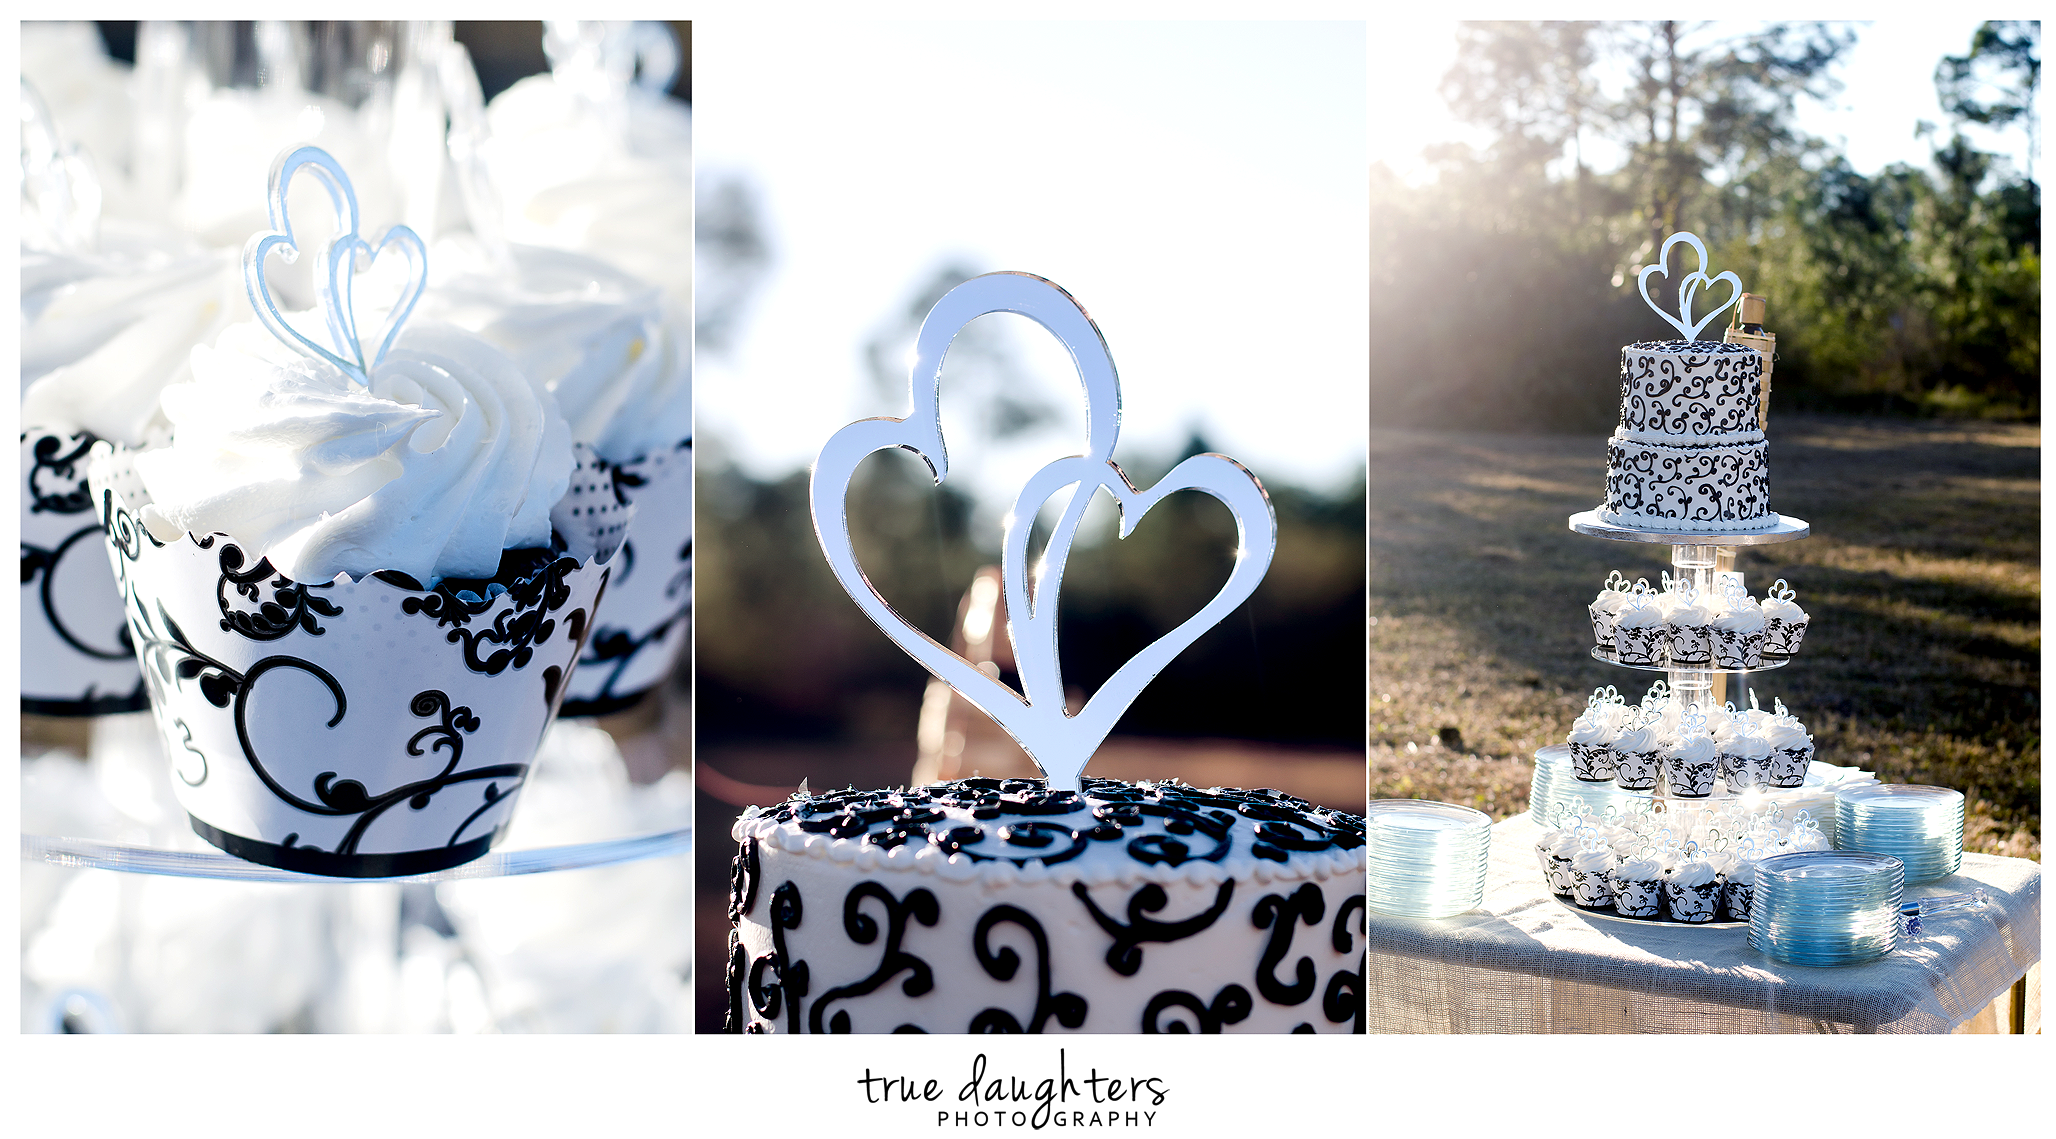 True_Daughters_Photography_Campitelli_Wedding-13.png